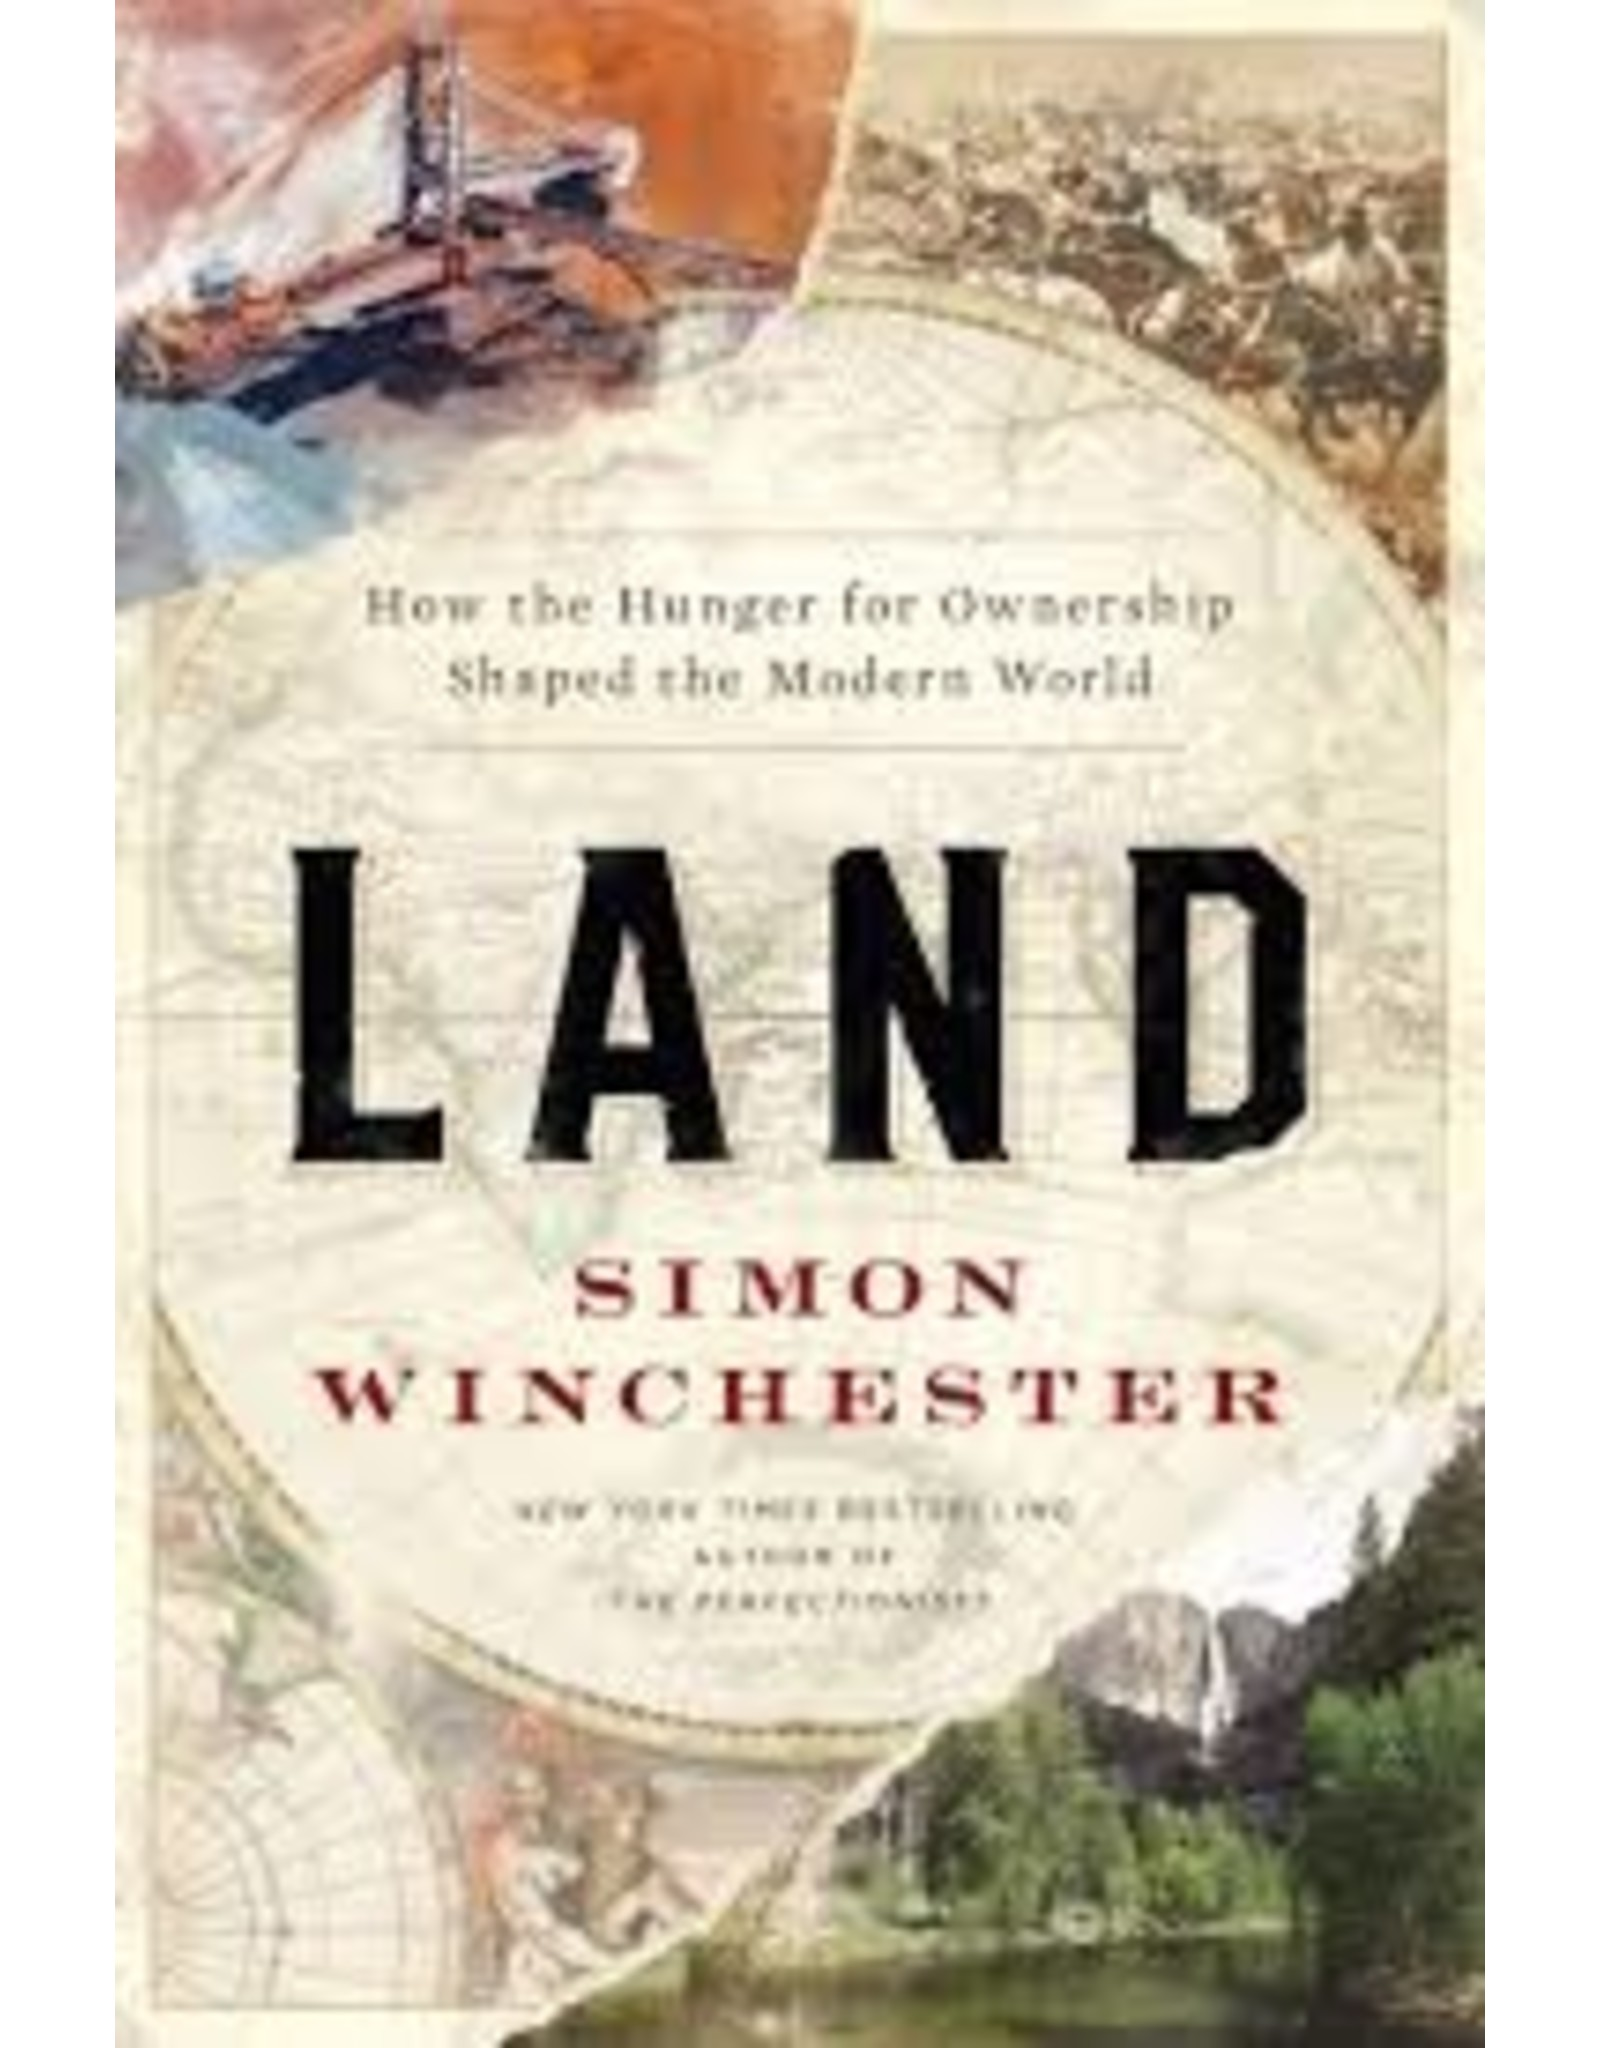 Books Land: How the Hunger for Owership Shaped the Modern World by Simon Winchester